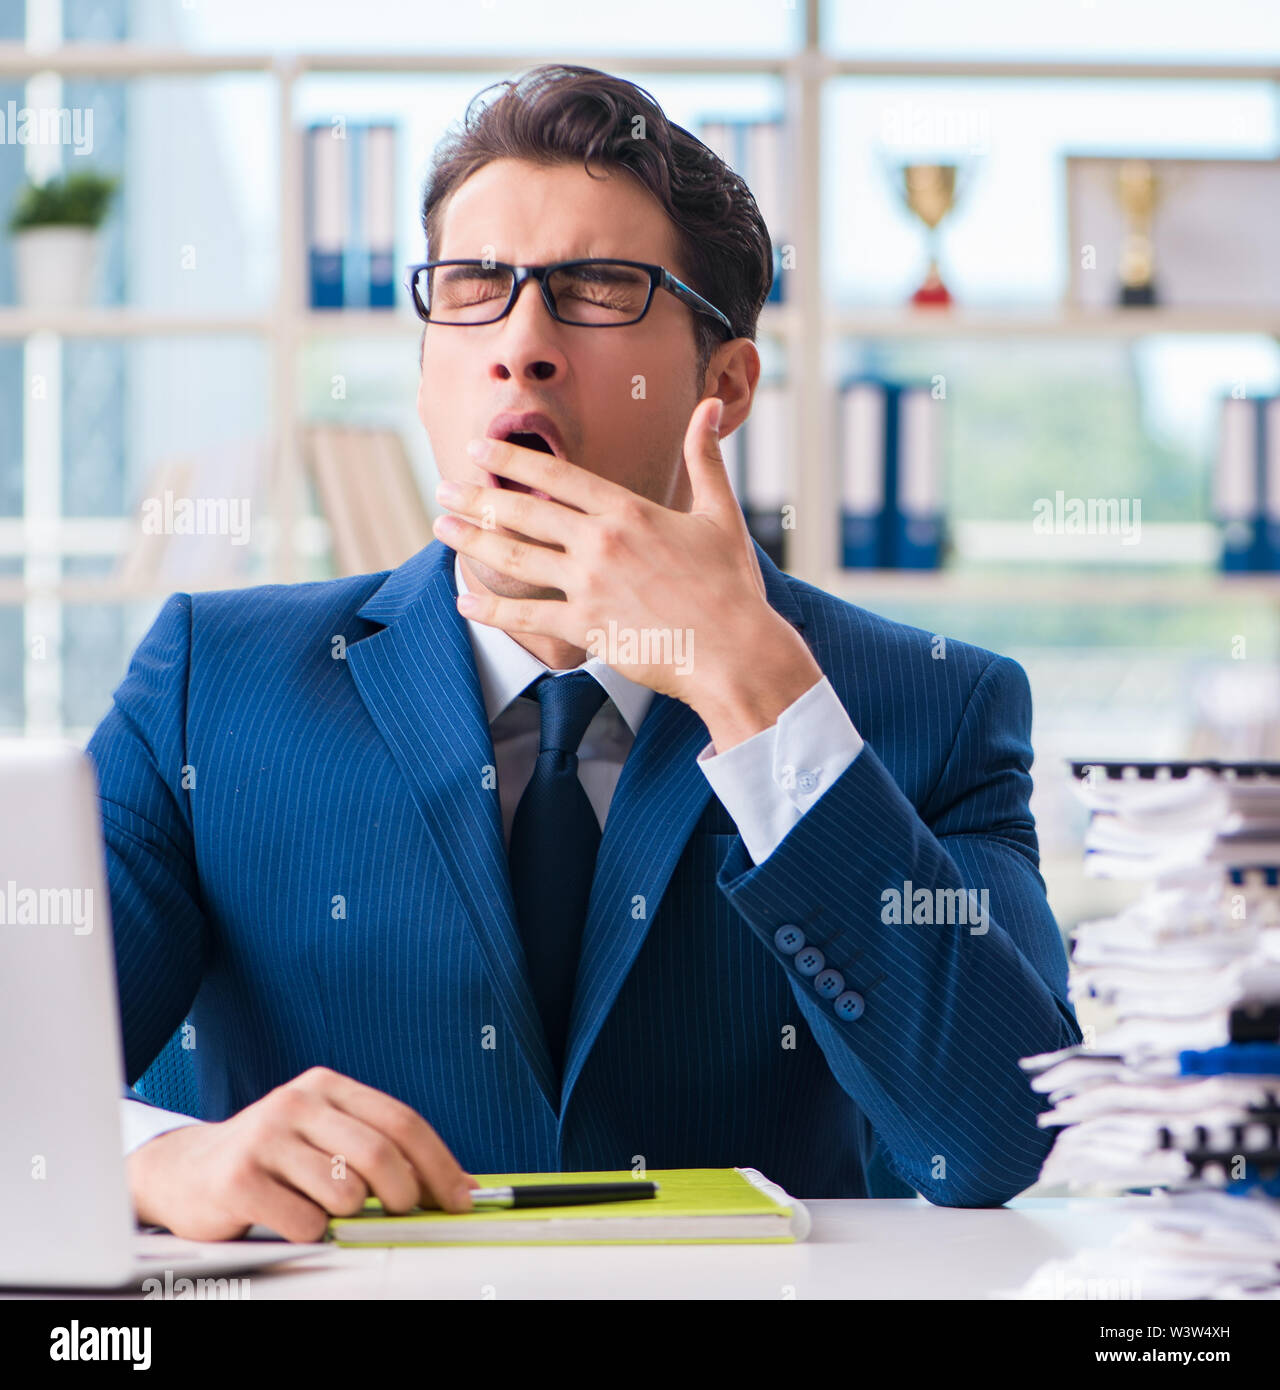 Tired businessman exhausted after hard work and excessive workload - Stock Image